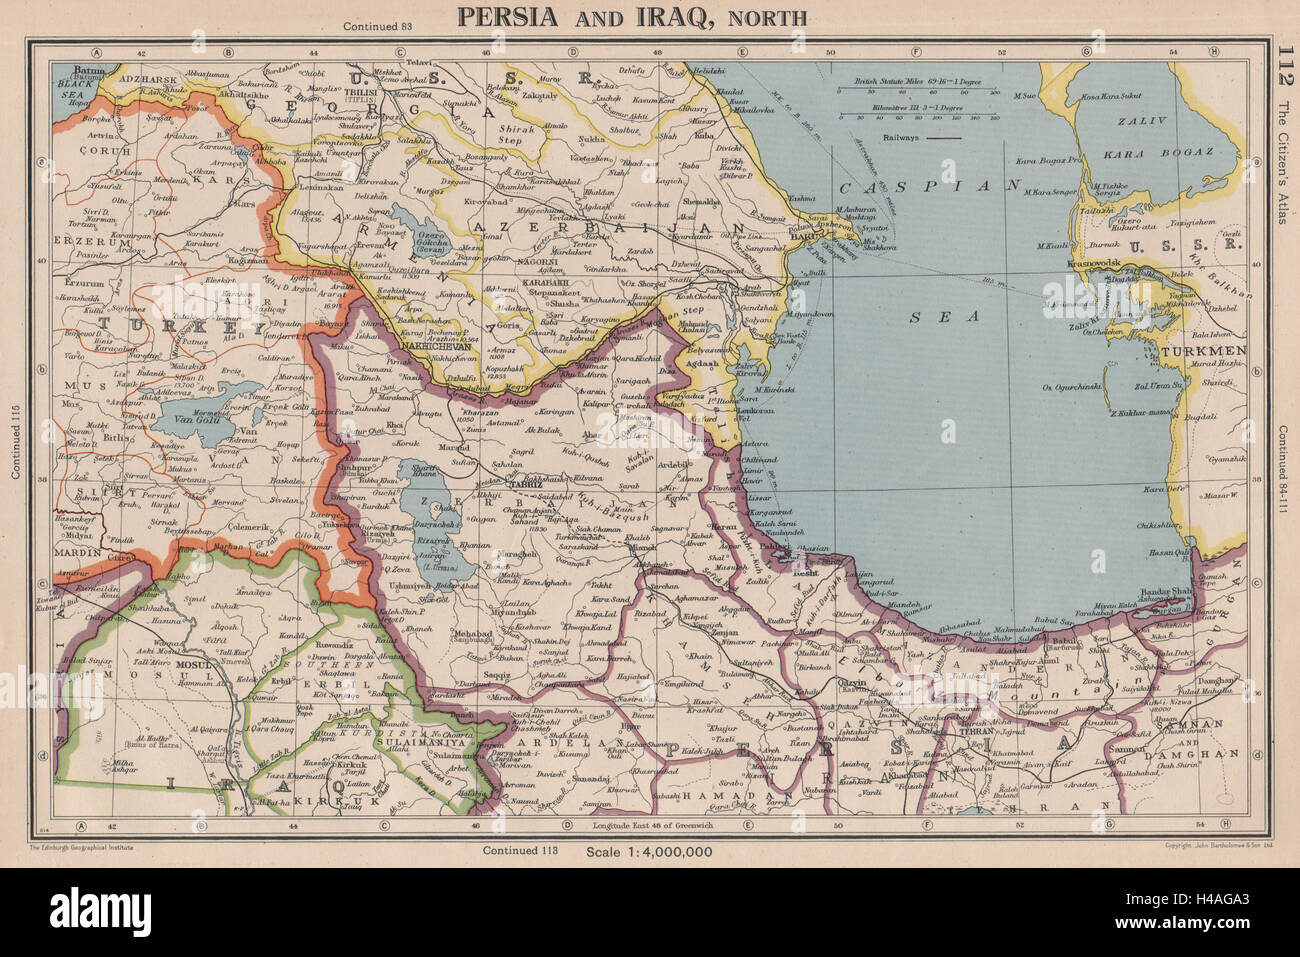 Southern caucasus persia iran north iraq azerbaijan armenia persia iran north iraq azerbaijan armenia turkey 1944 map gumiabroncs Gallery